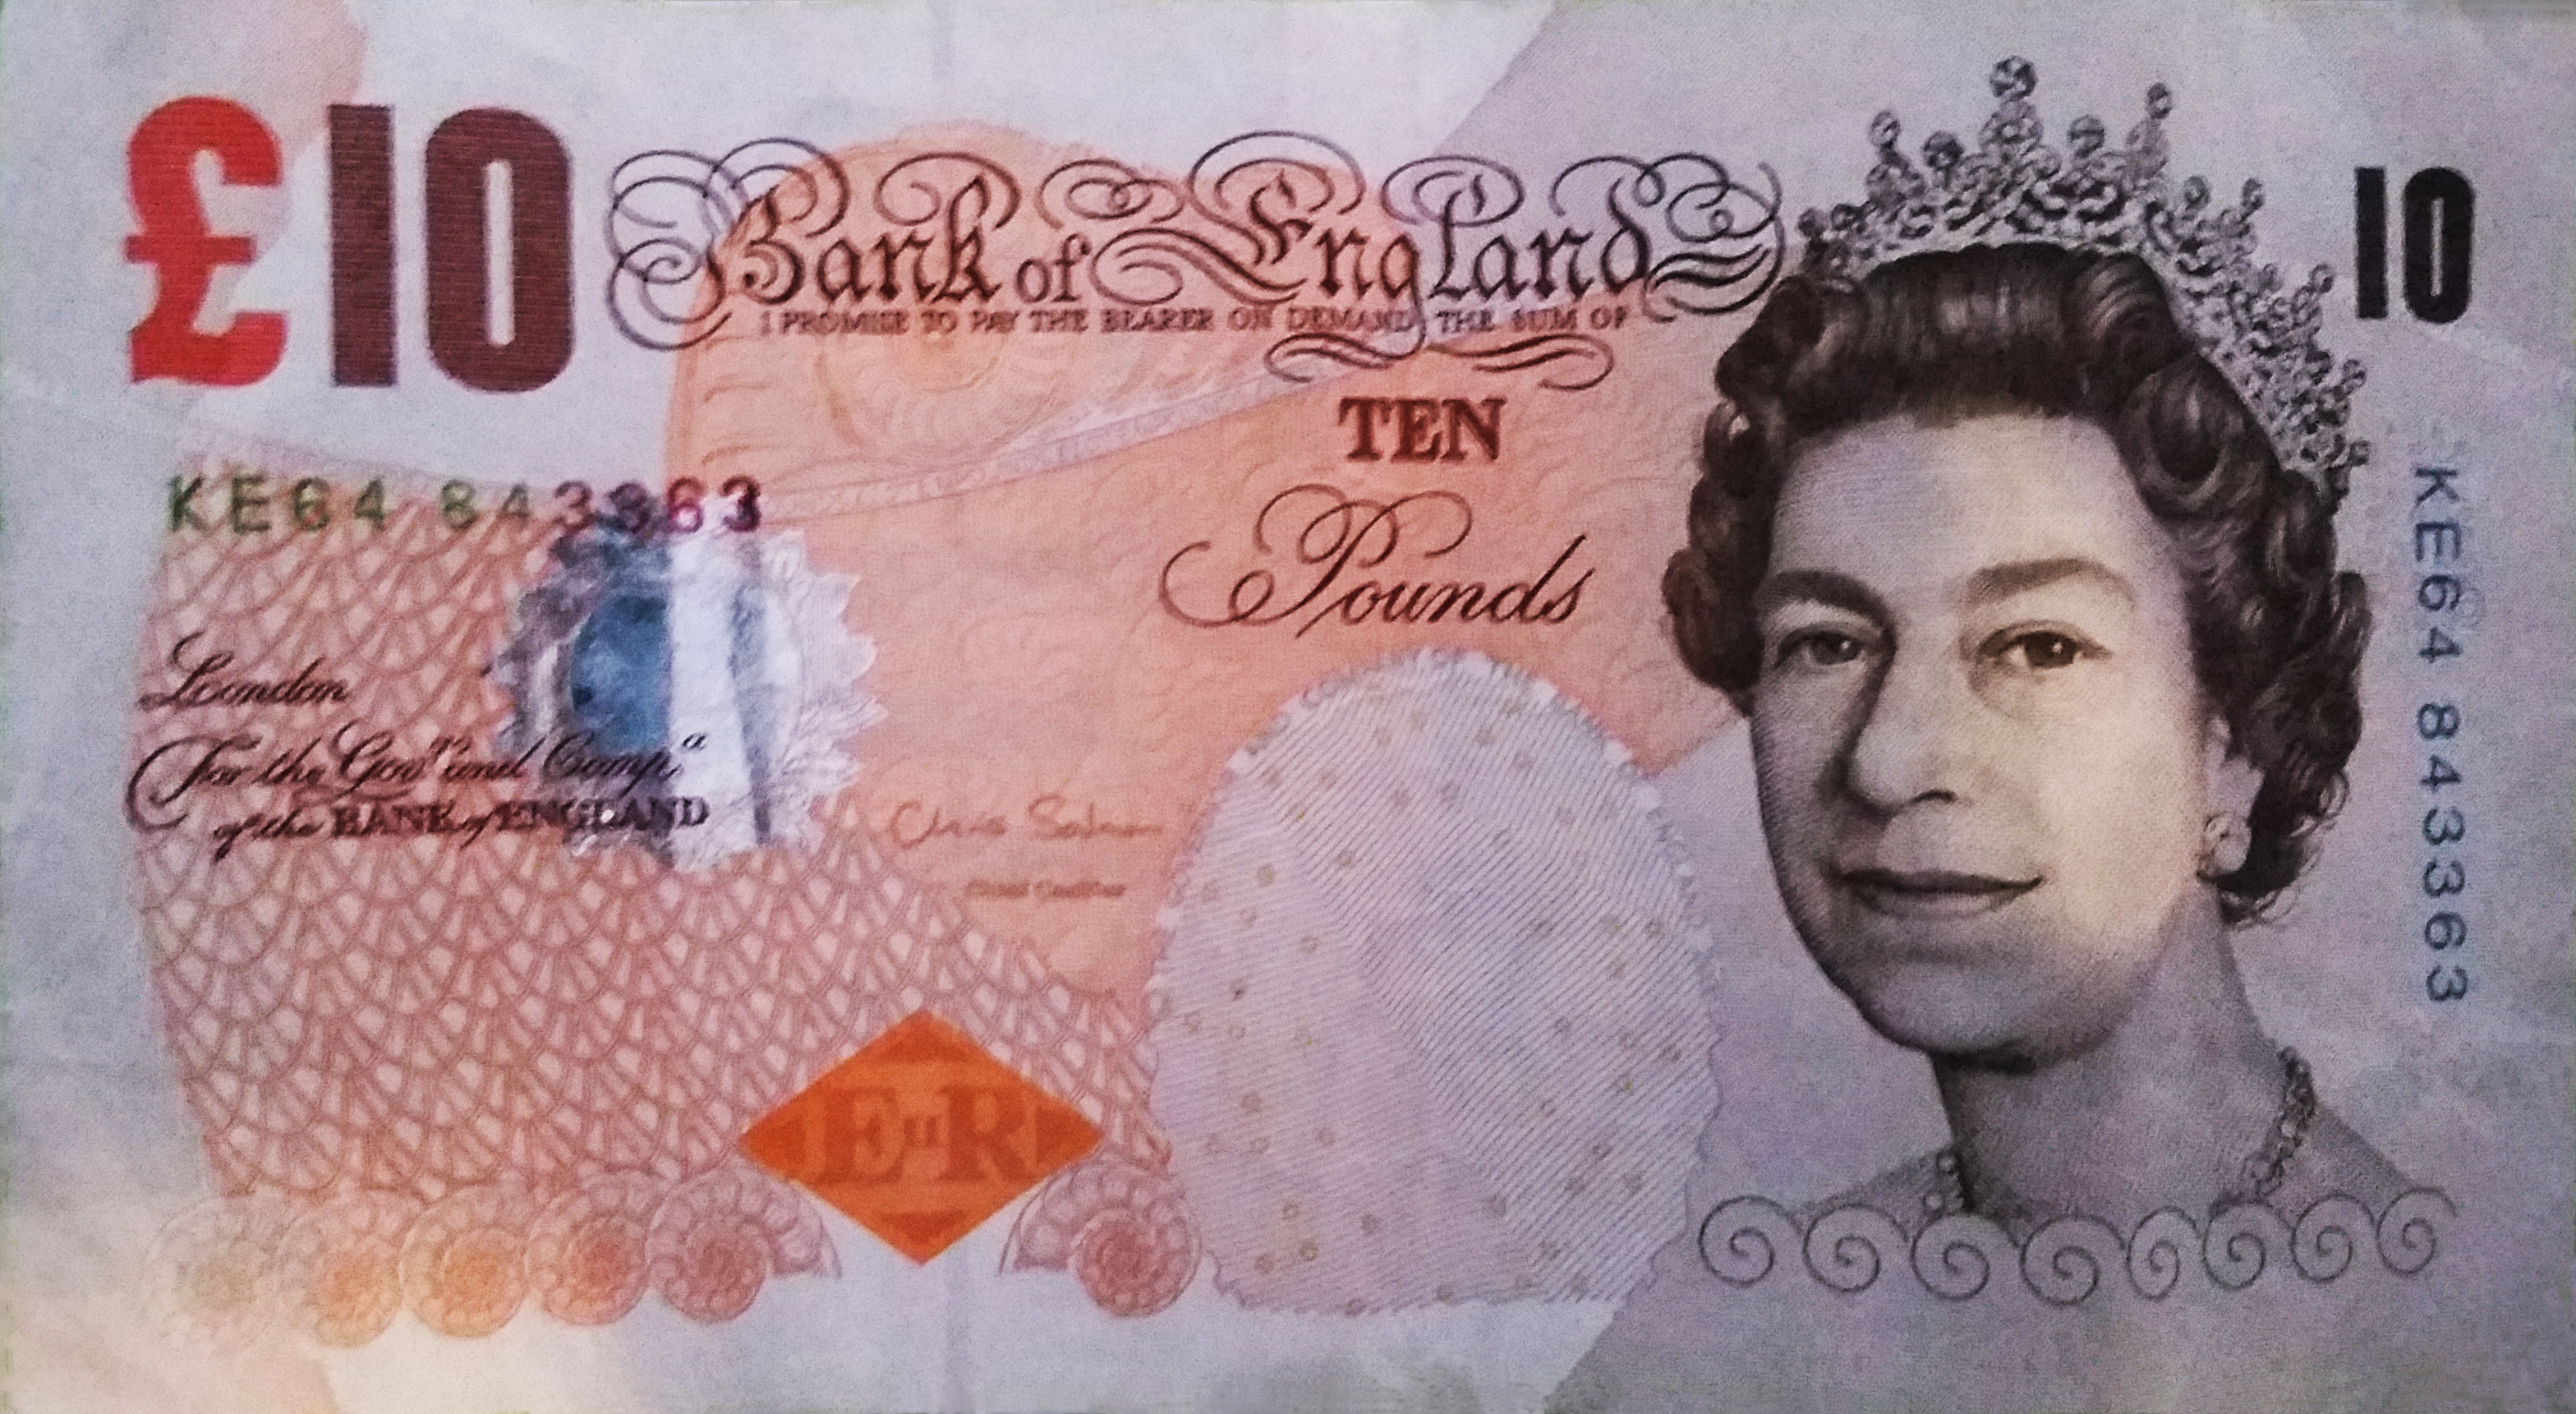 billet de banque uk